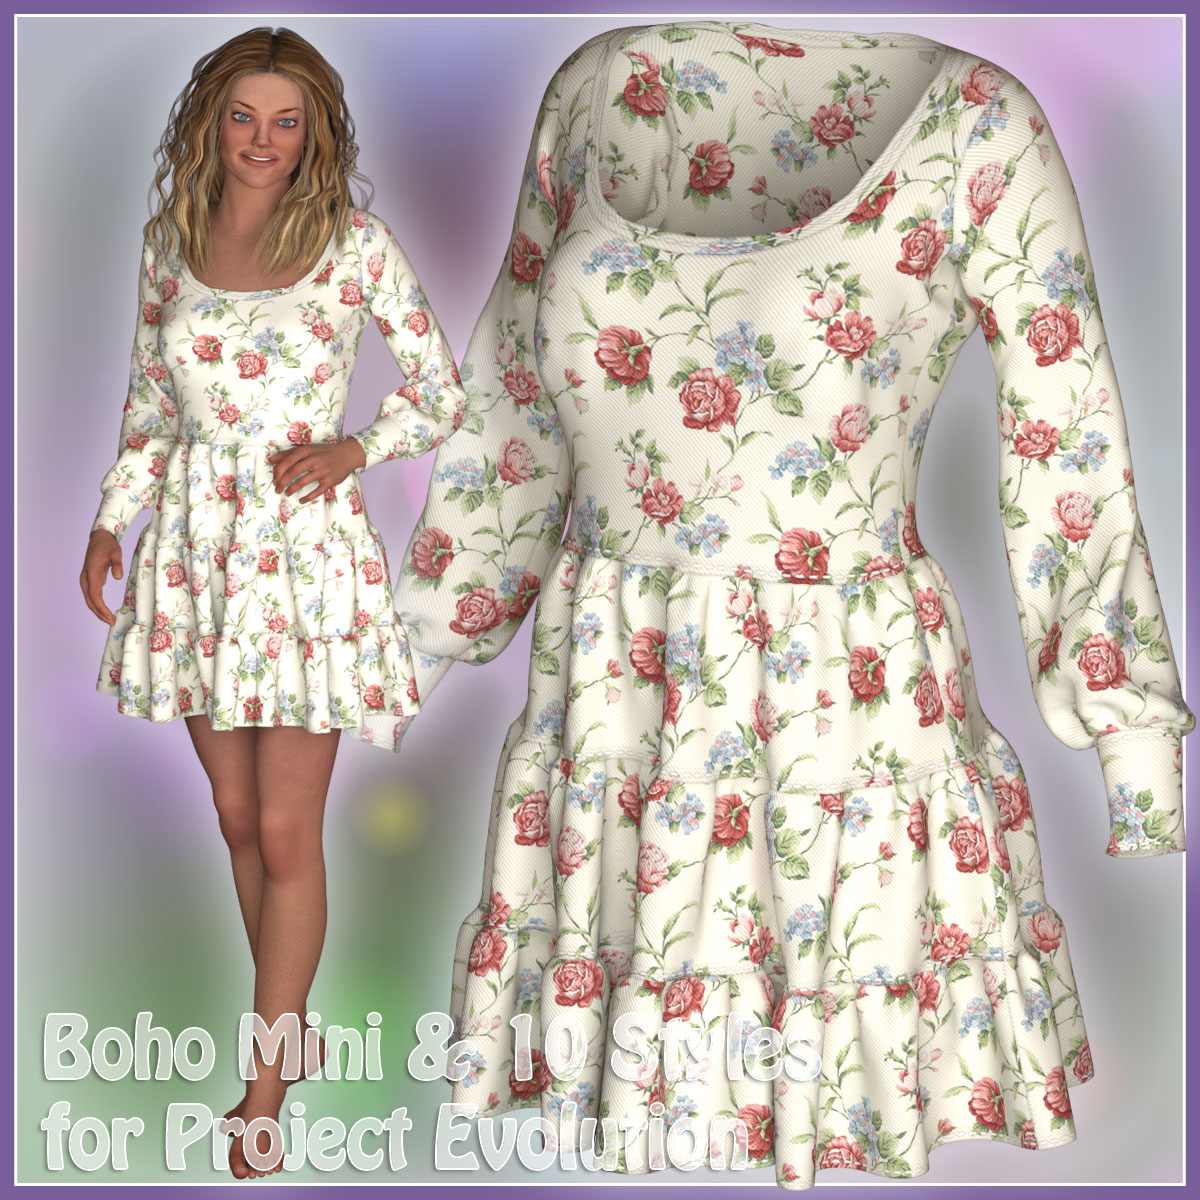 Boho Mini Dress for PE - Poser